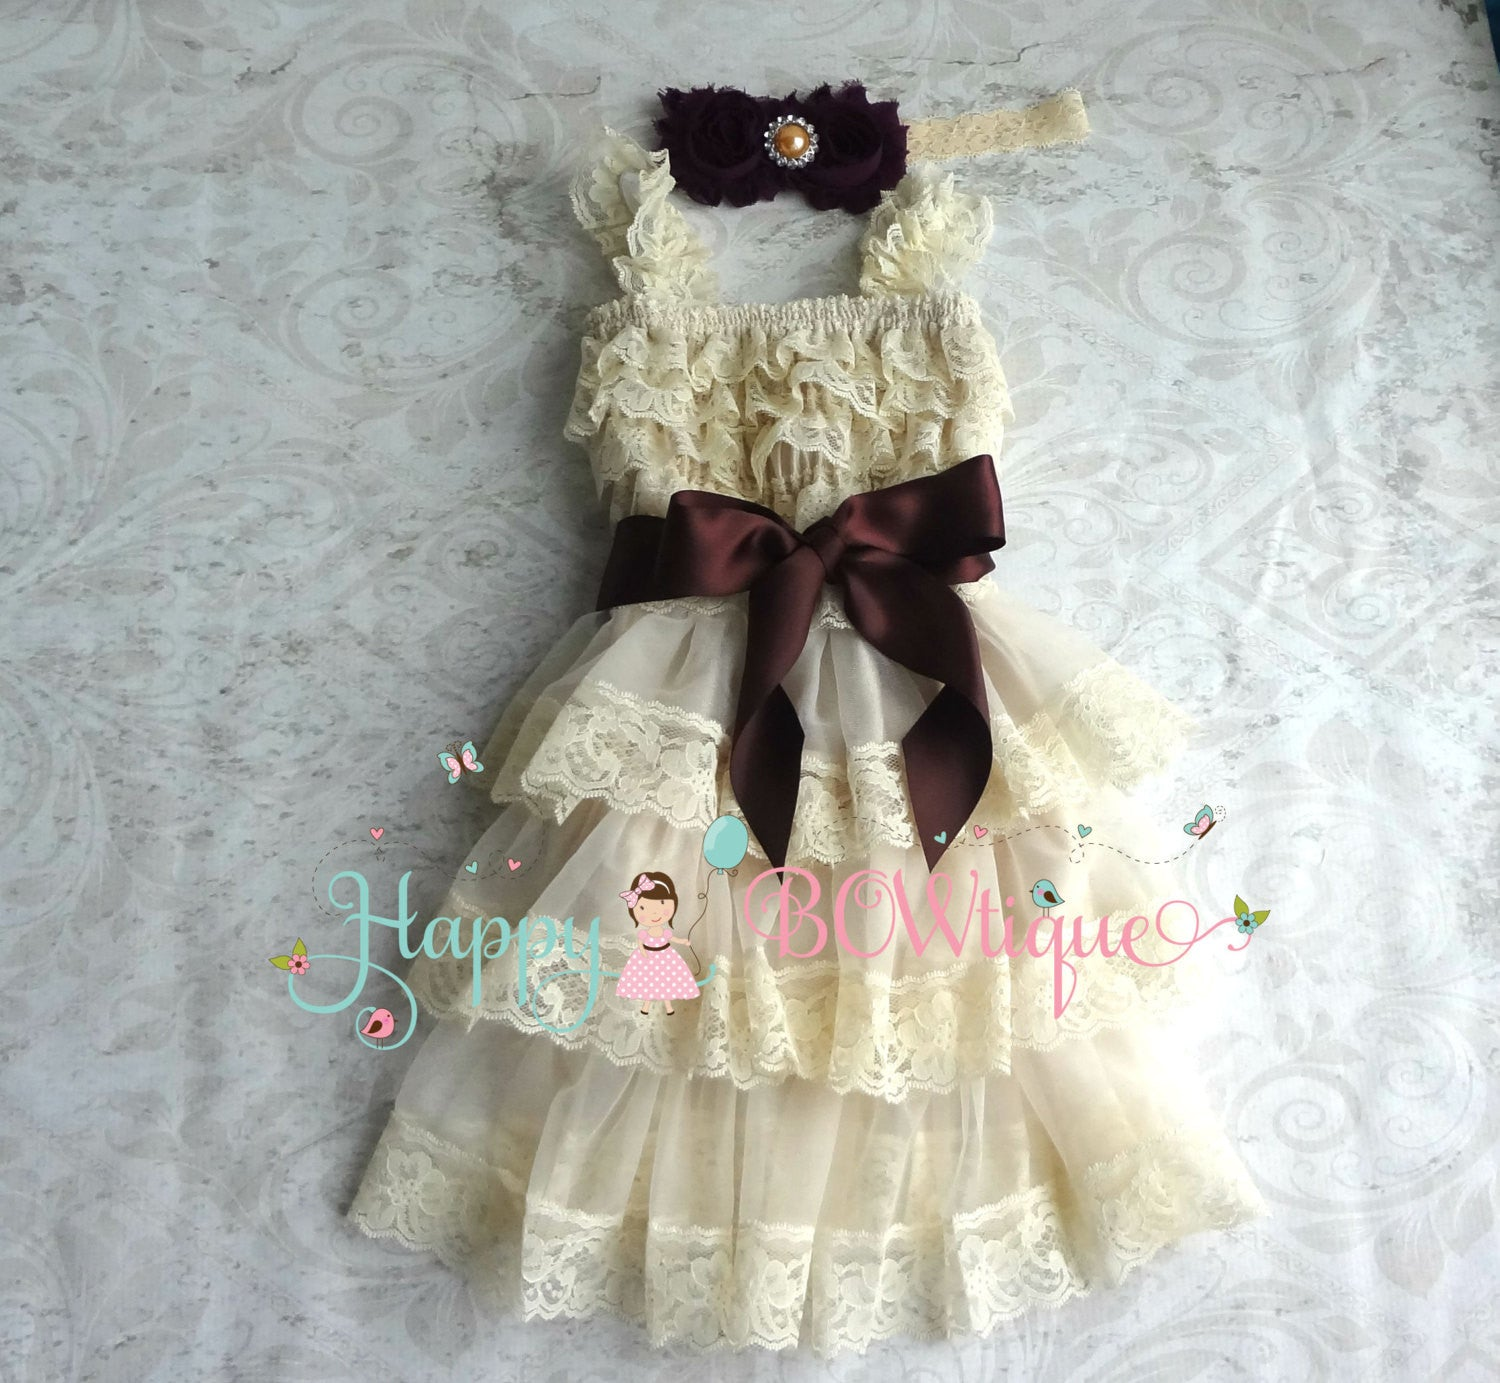 814d181b8a57 Rustic Flower girl dress / Champagne PlumTier Dress set \/ Happy BOWtique  \/ Chiffon dress set